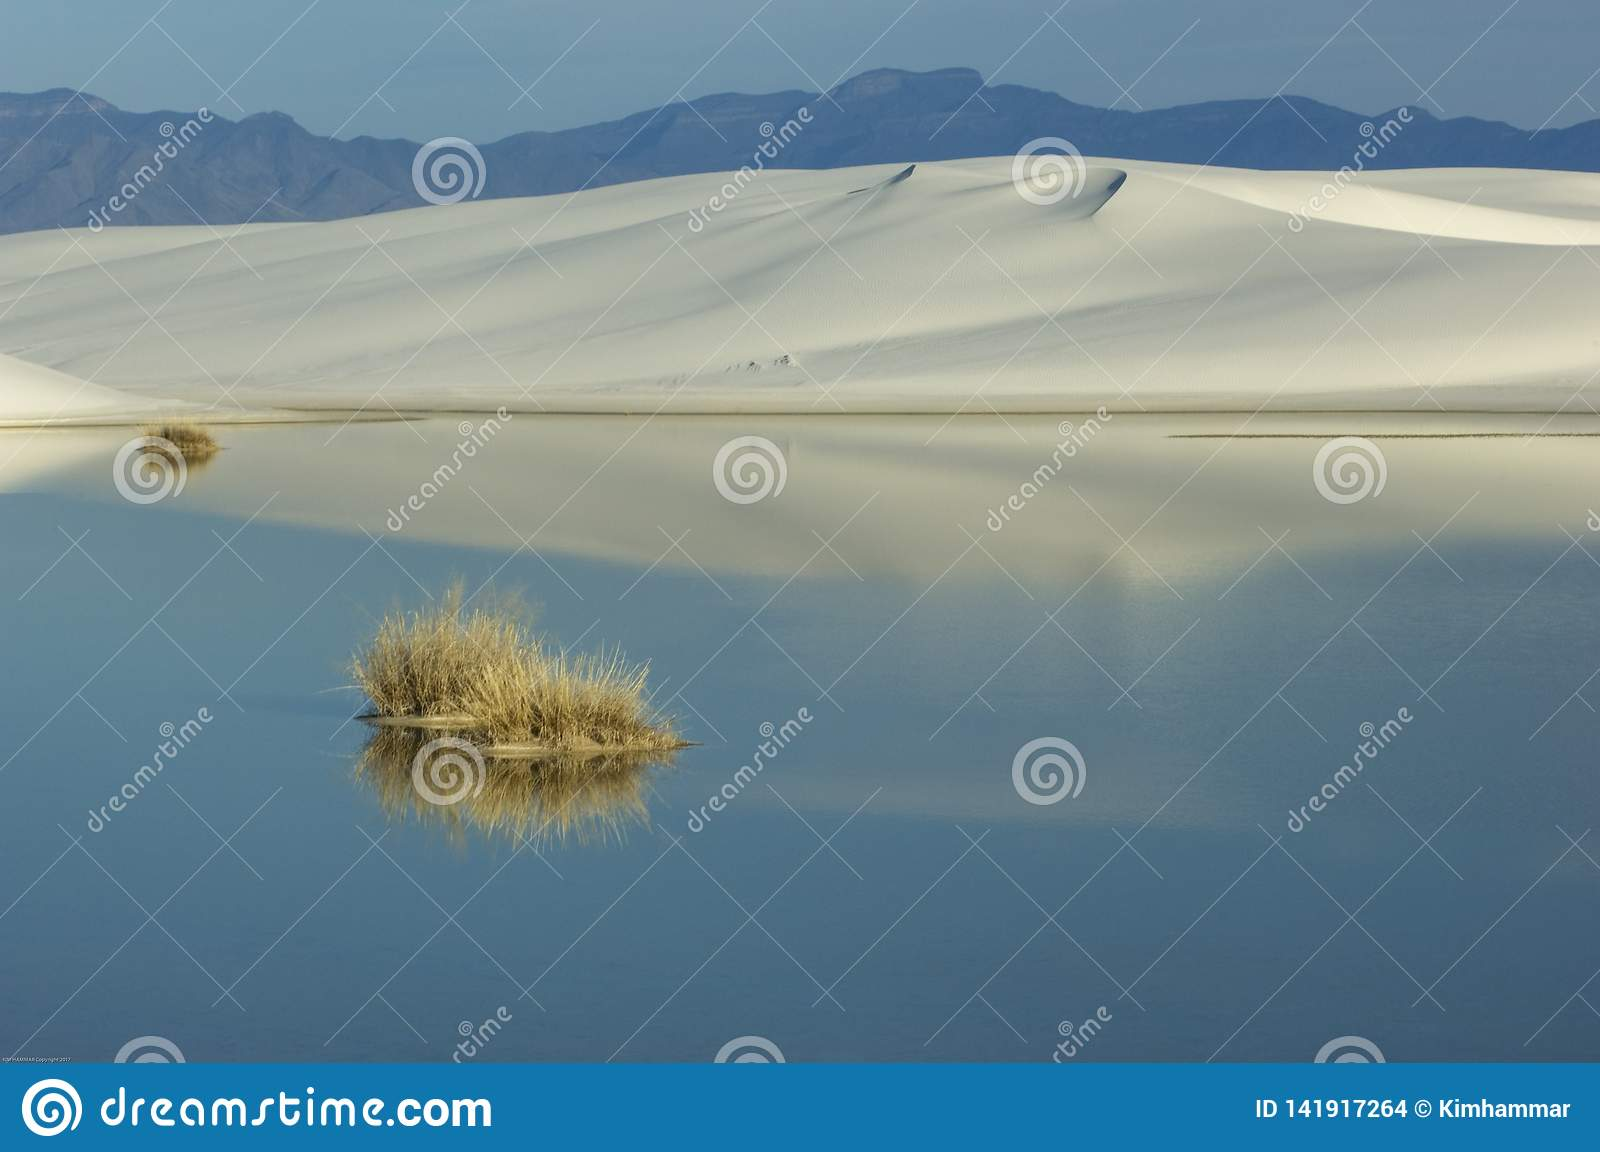 Rainwater reflects the blue sky in White Sands National Monument, New Mexico